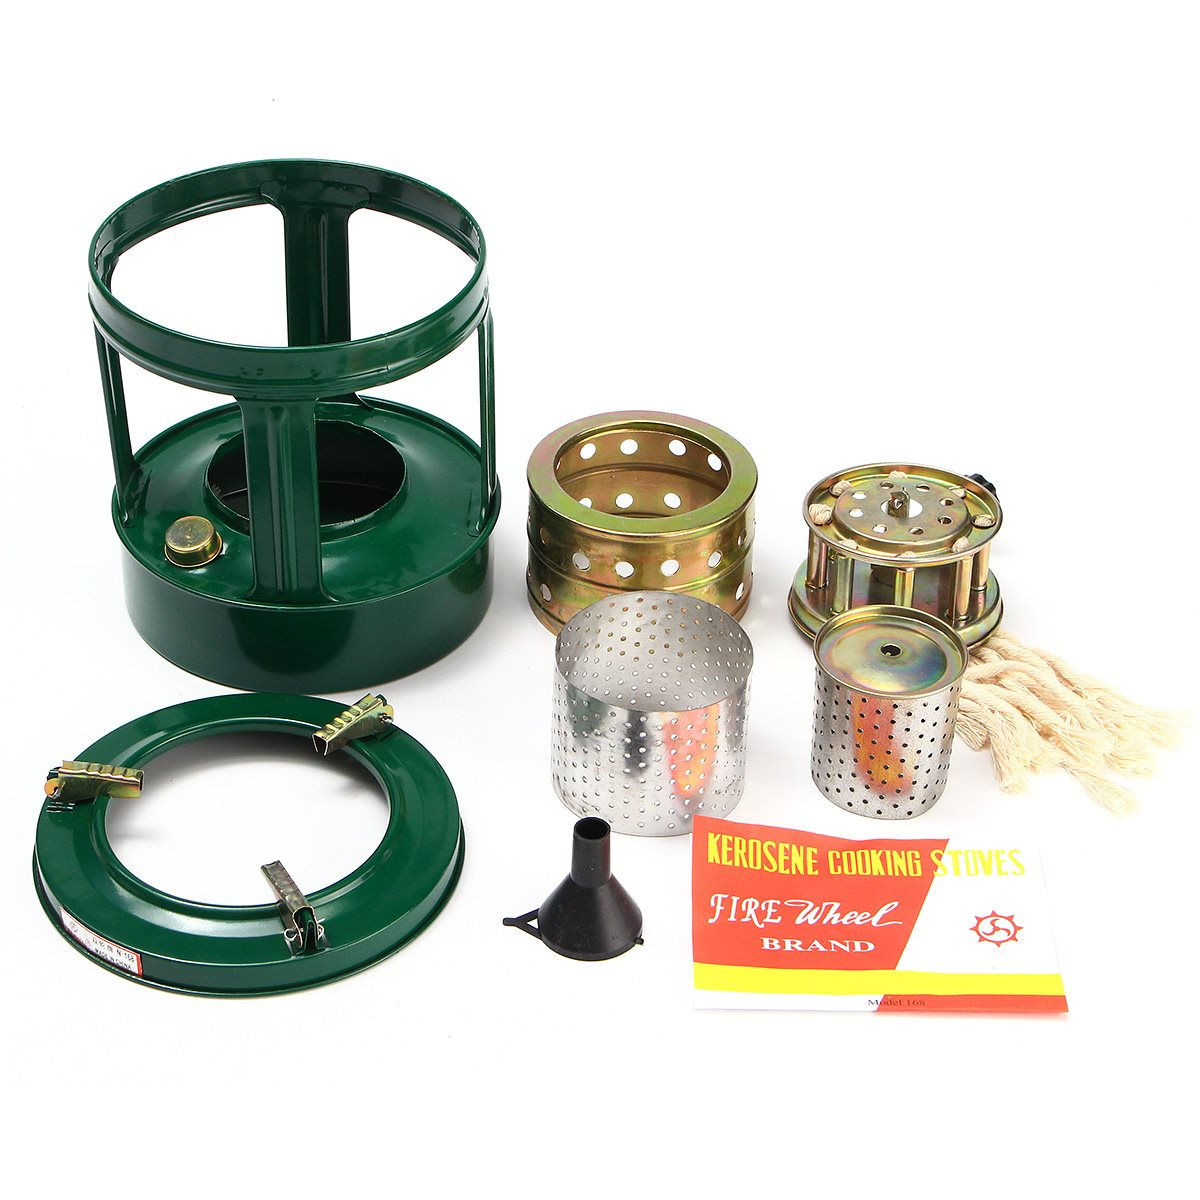 Portable Handy Removable Gas Stove Handy Portable Outdoor 8 Wicks ... for Kerosene Camp Stove  61obs